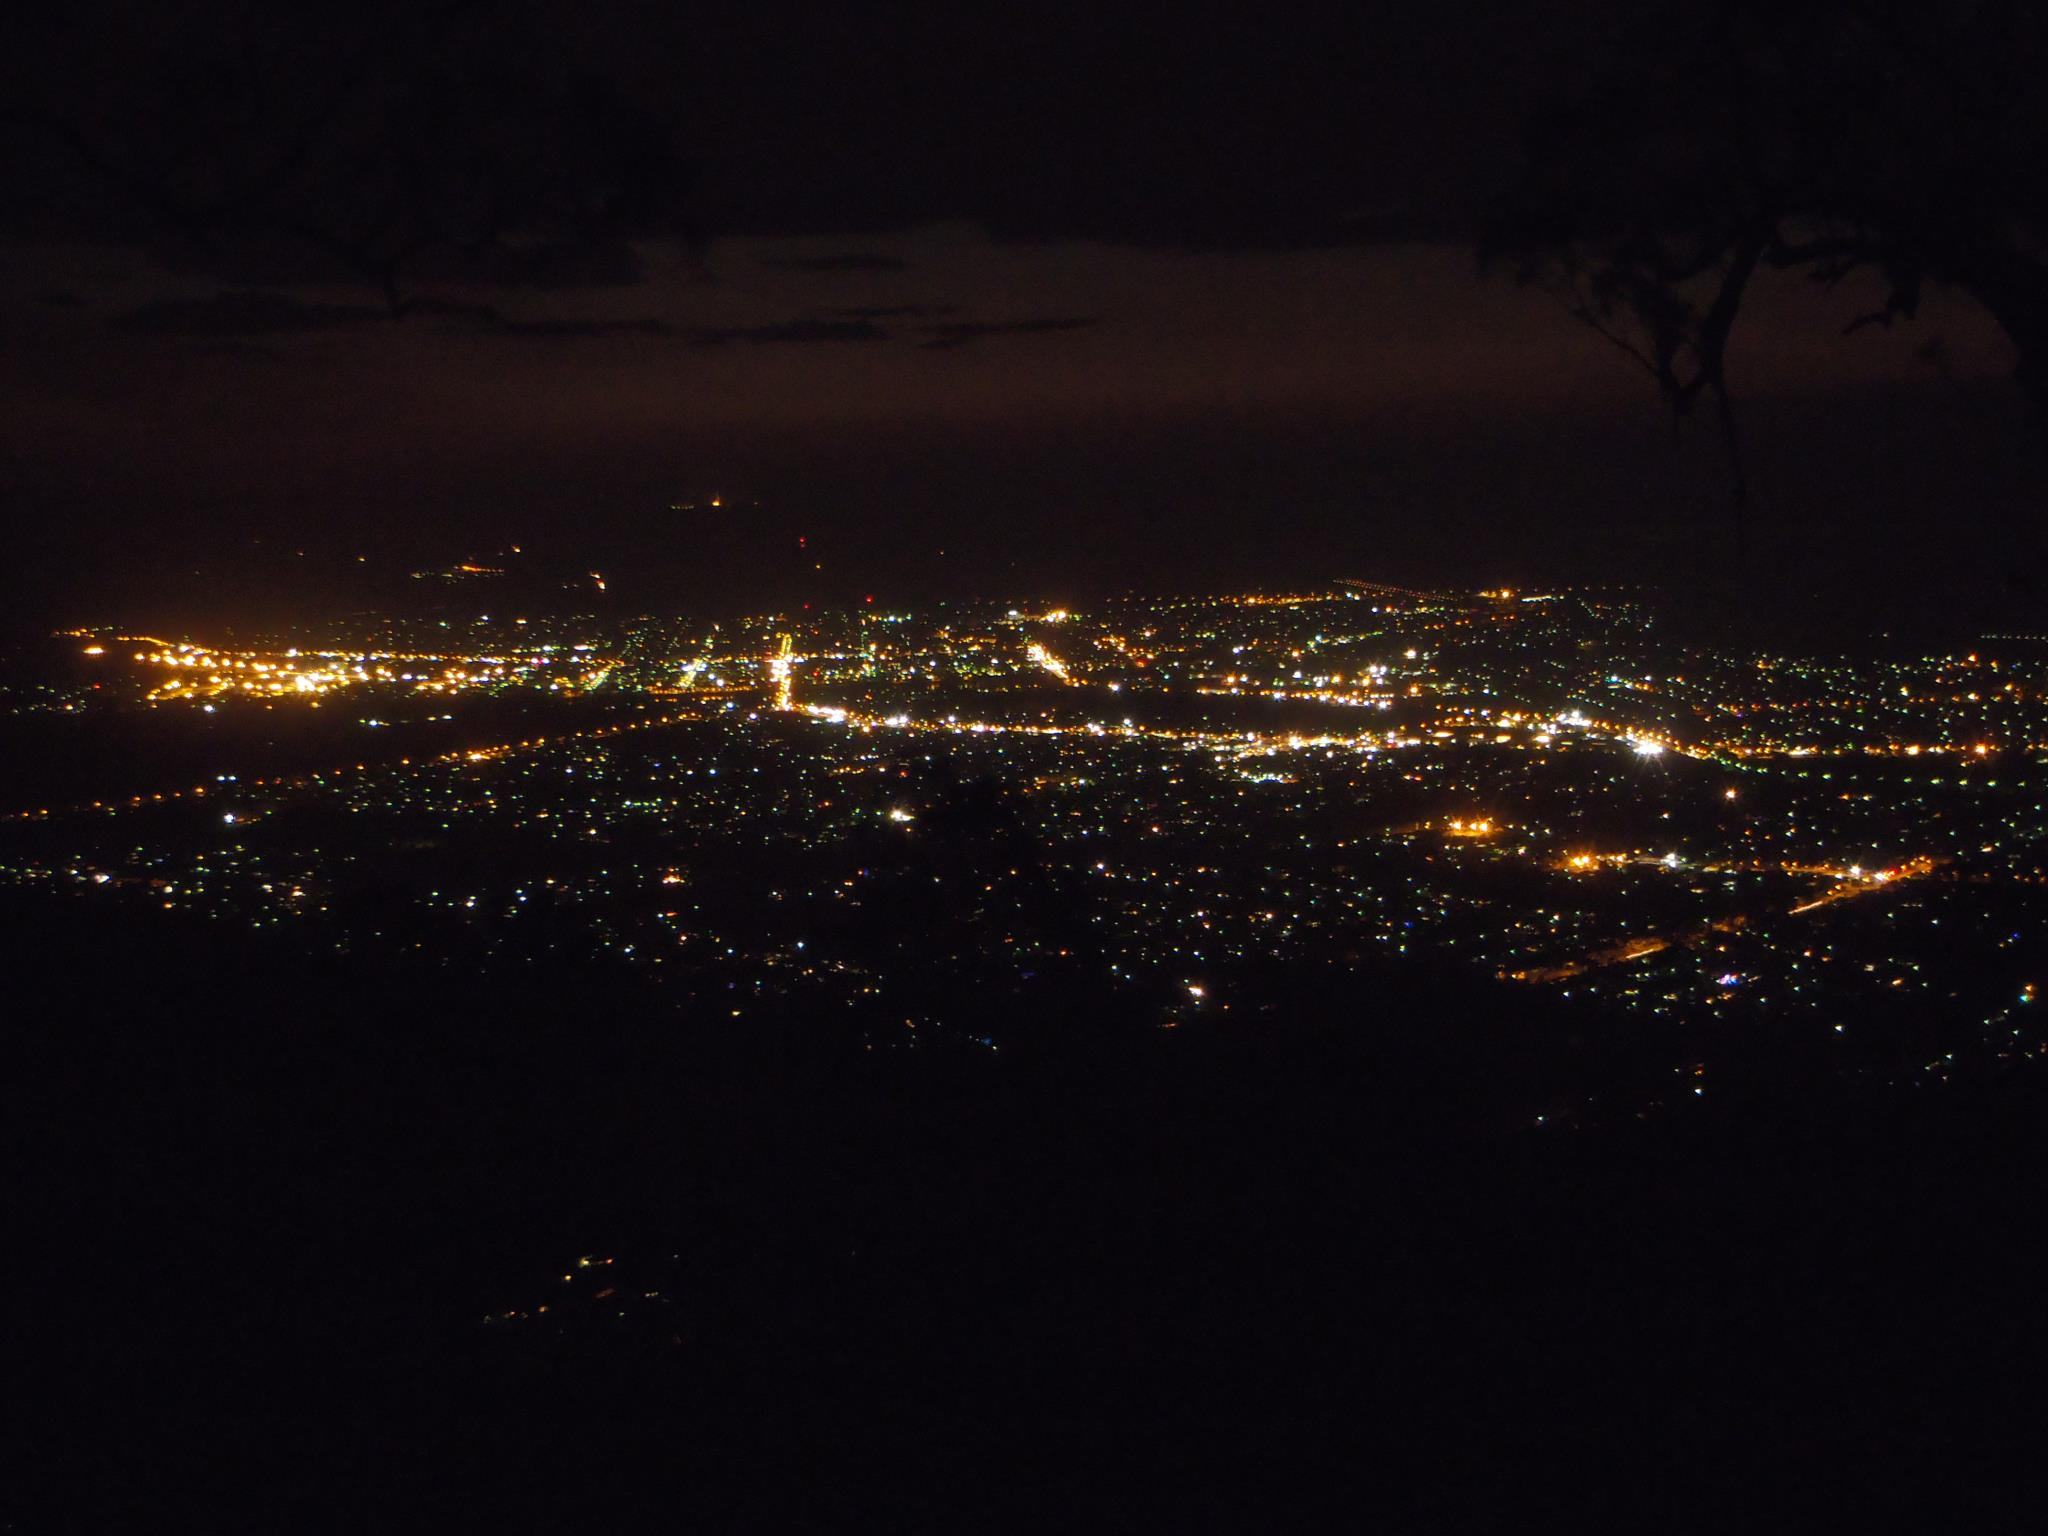 Rockhampton by night, by Kriscmay on Wikimedia Commons, used under CC licence 3.0 ASA.